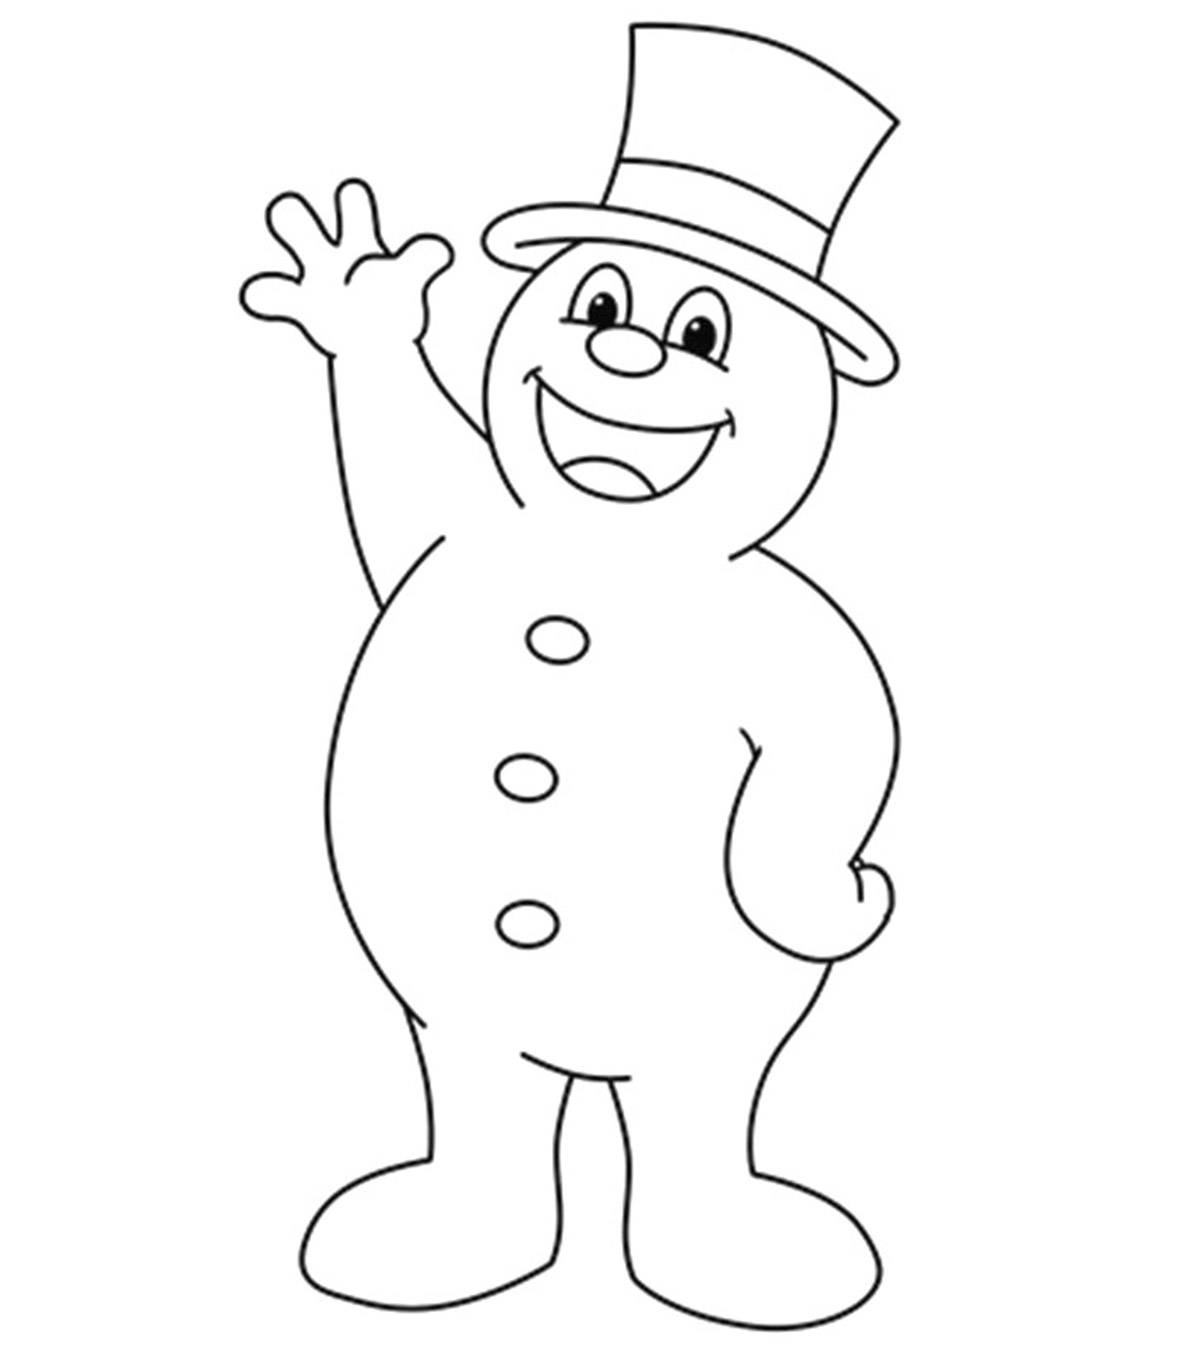 Snowmen Coloring Pages 10 Cute Frosty The Snowman Coloring Pages For Toddlers